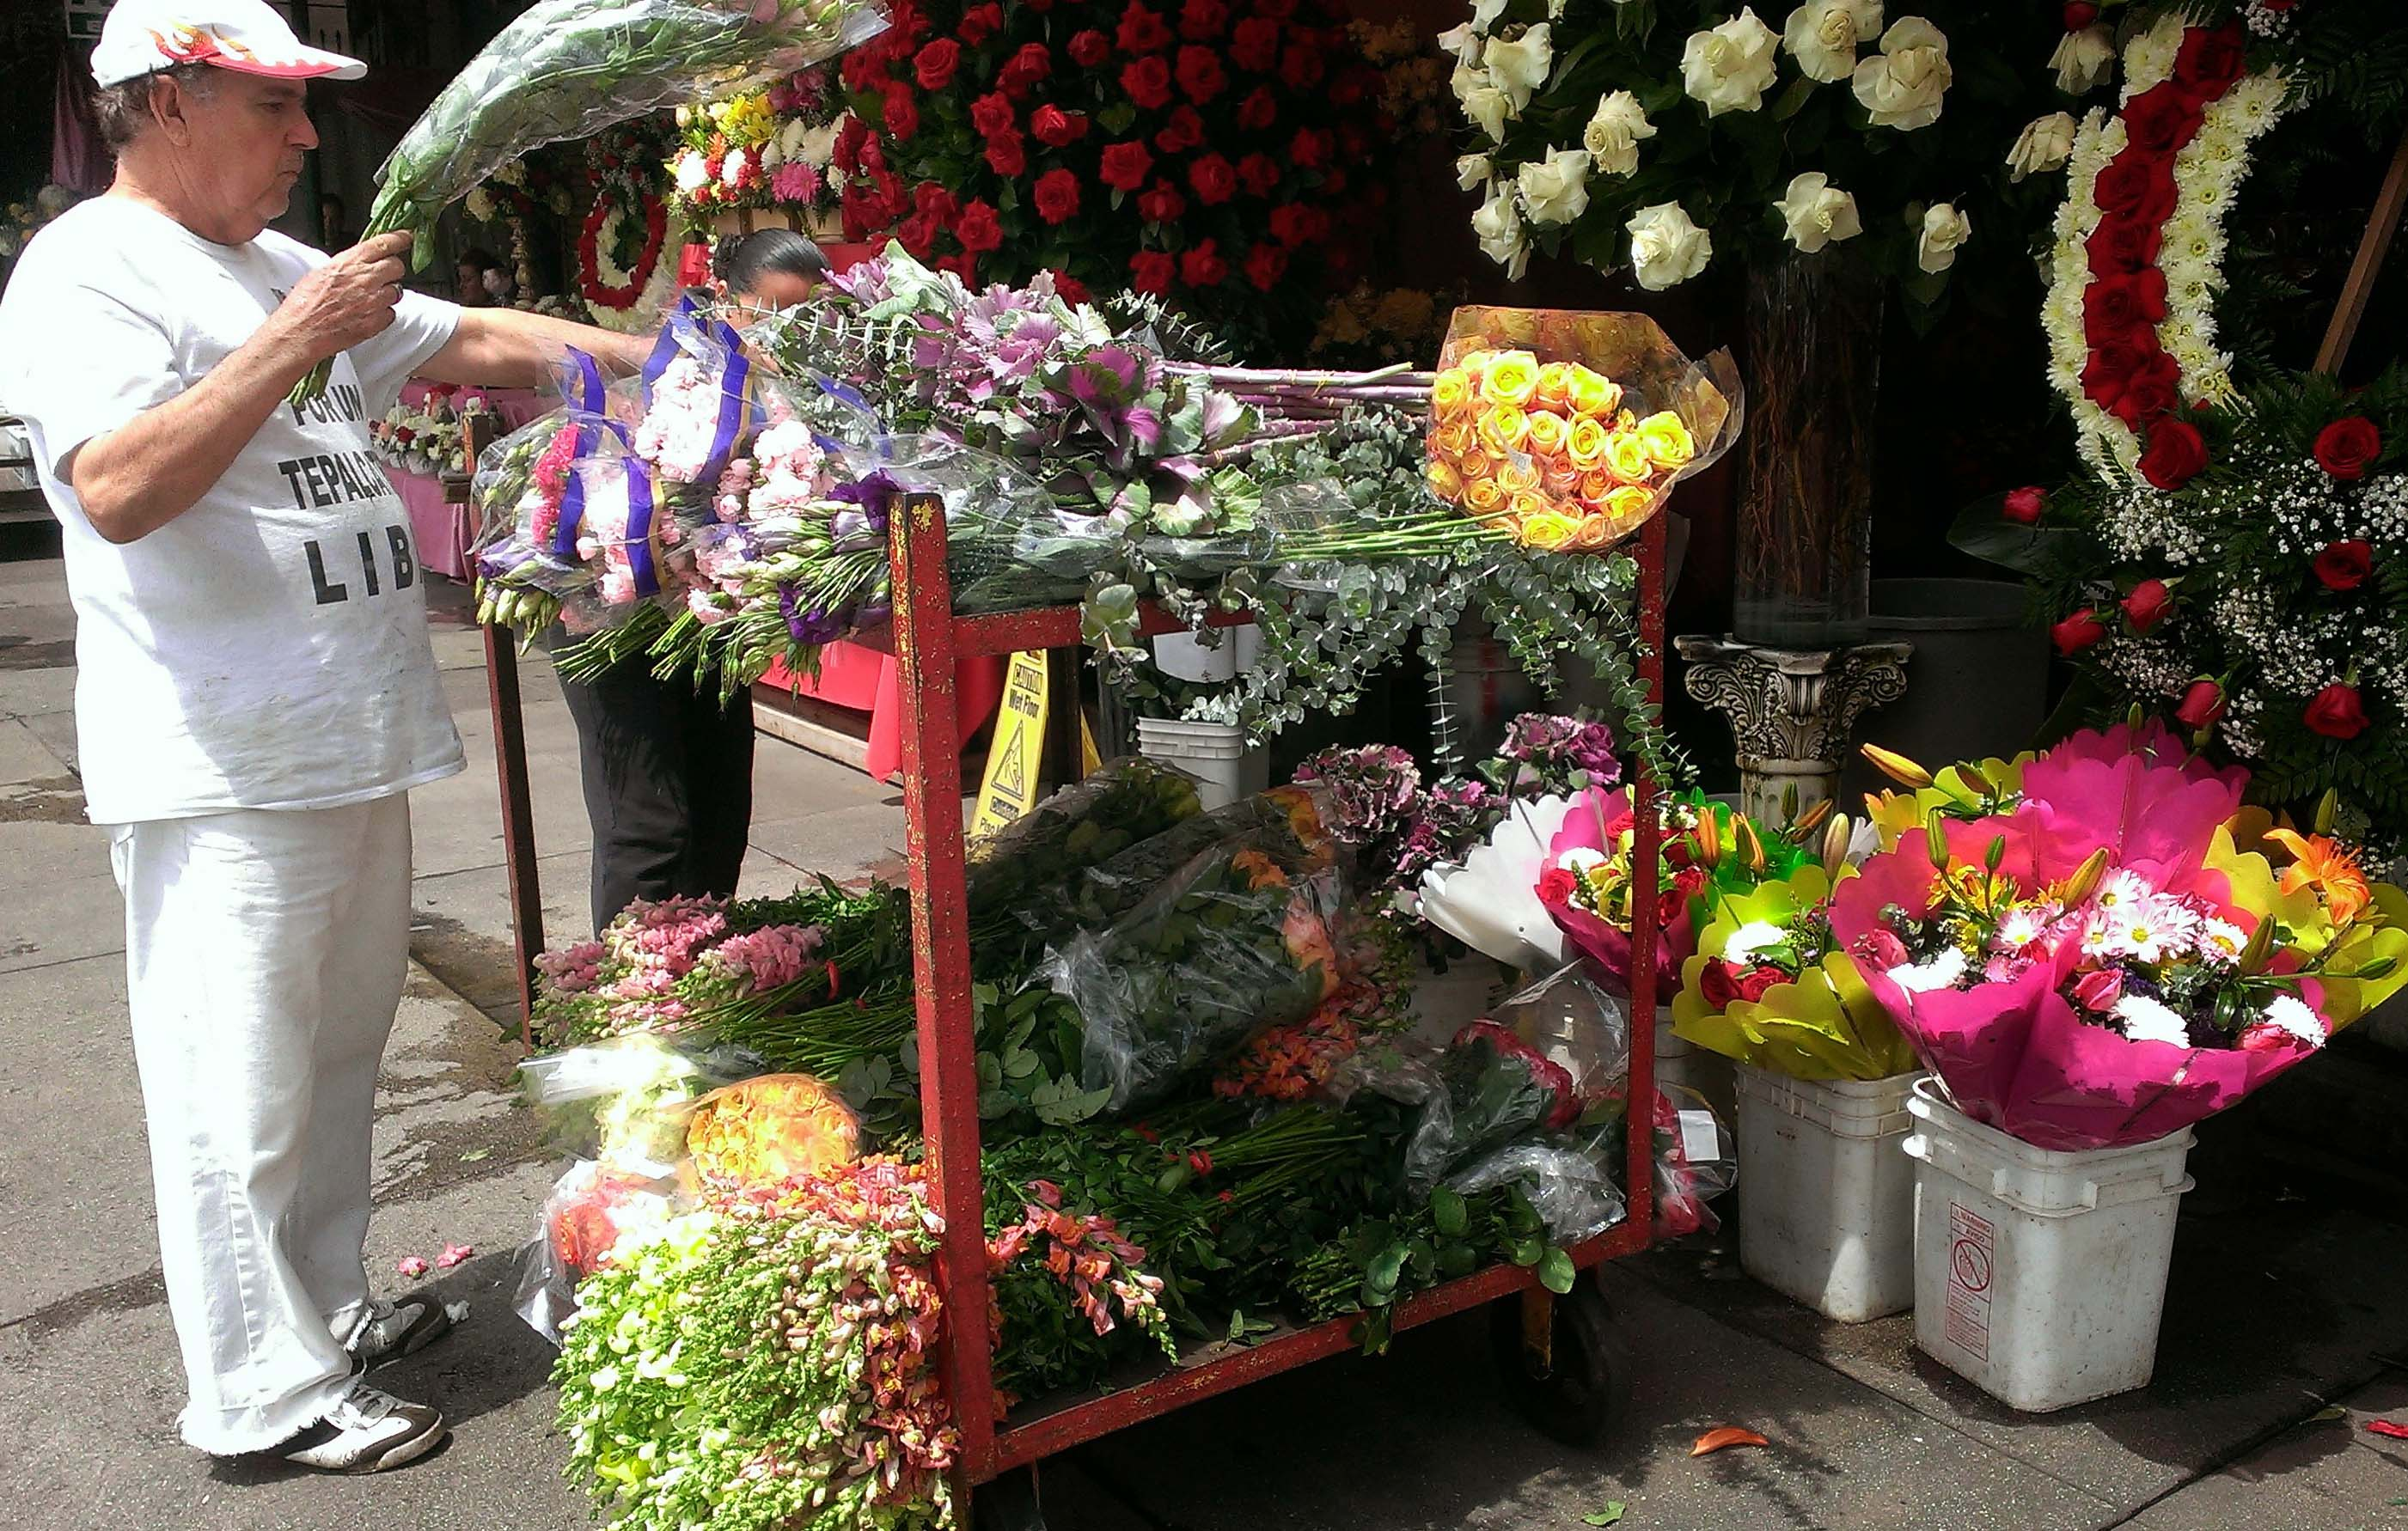 Cfm gives tips to buy cheap funeral flowers in las flower district selecting diy flowers and supplies to make funeral arrangementscalifornia flower mall 825 san pedro street los angeles ca izmirmasajfo